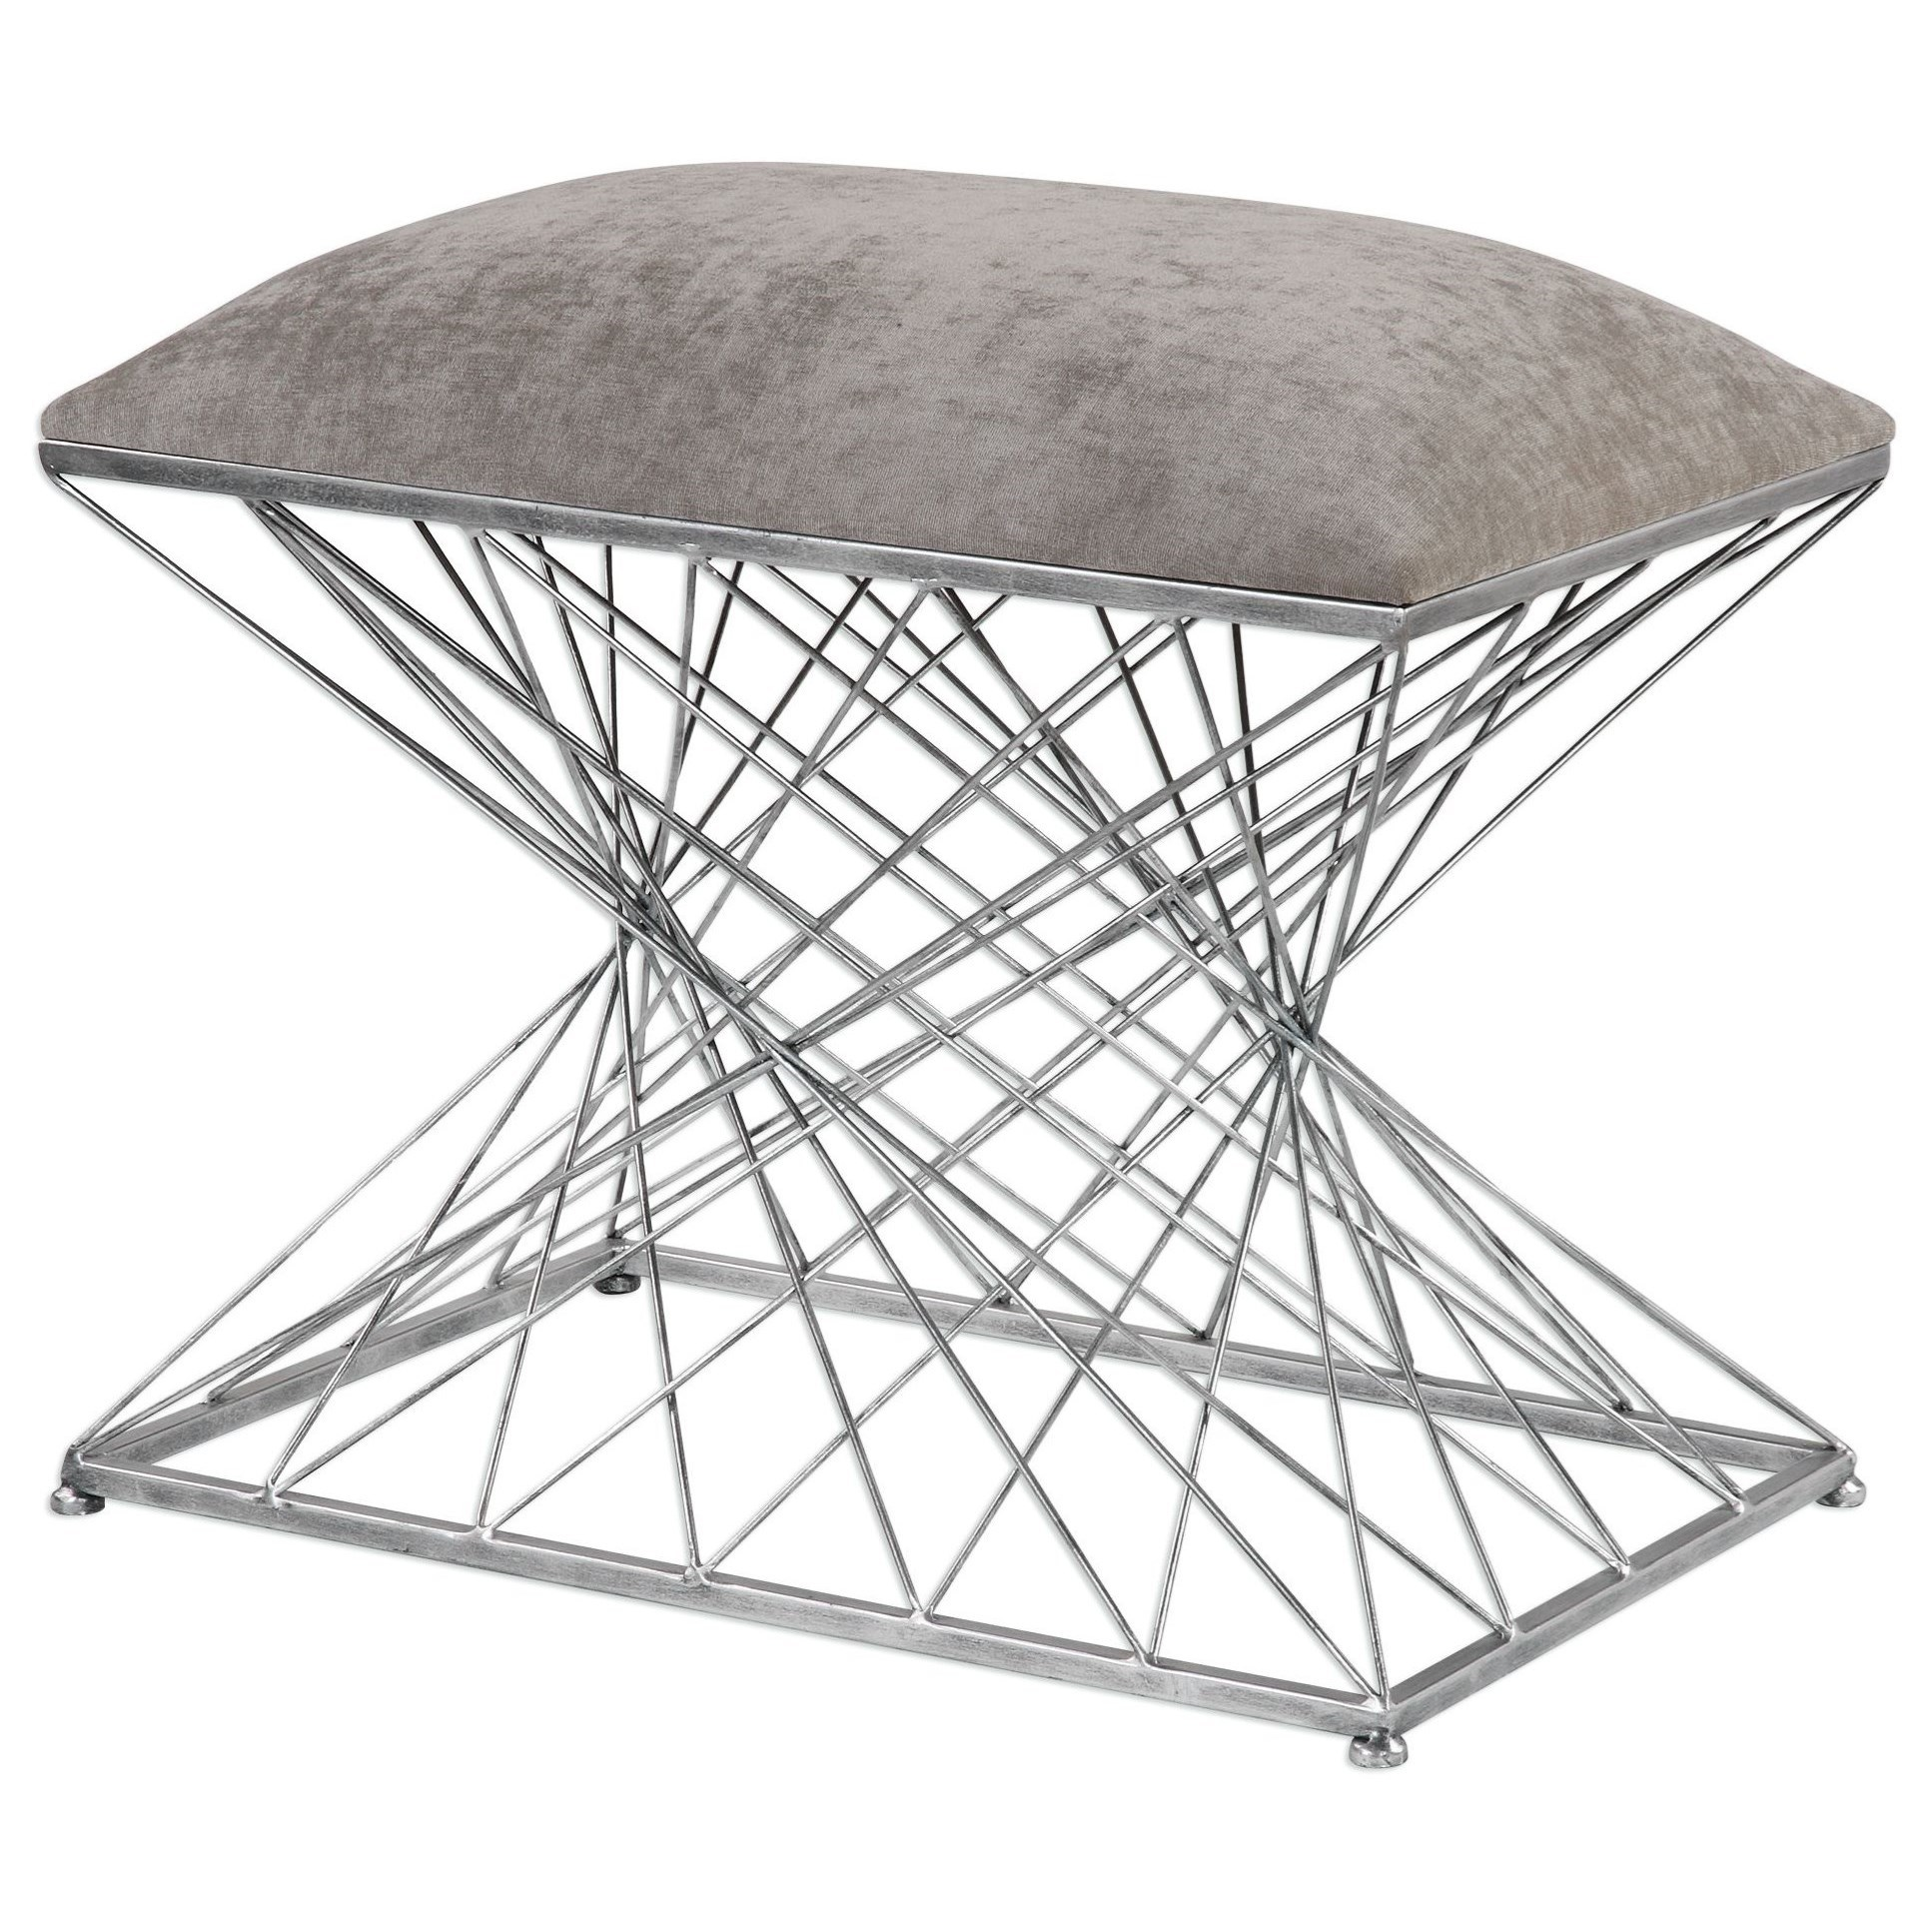 Accent Furniture - Benches Zelia Silver Accent Stool by Uttermost at Upper Room Home Furnishings